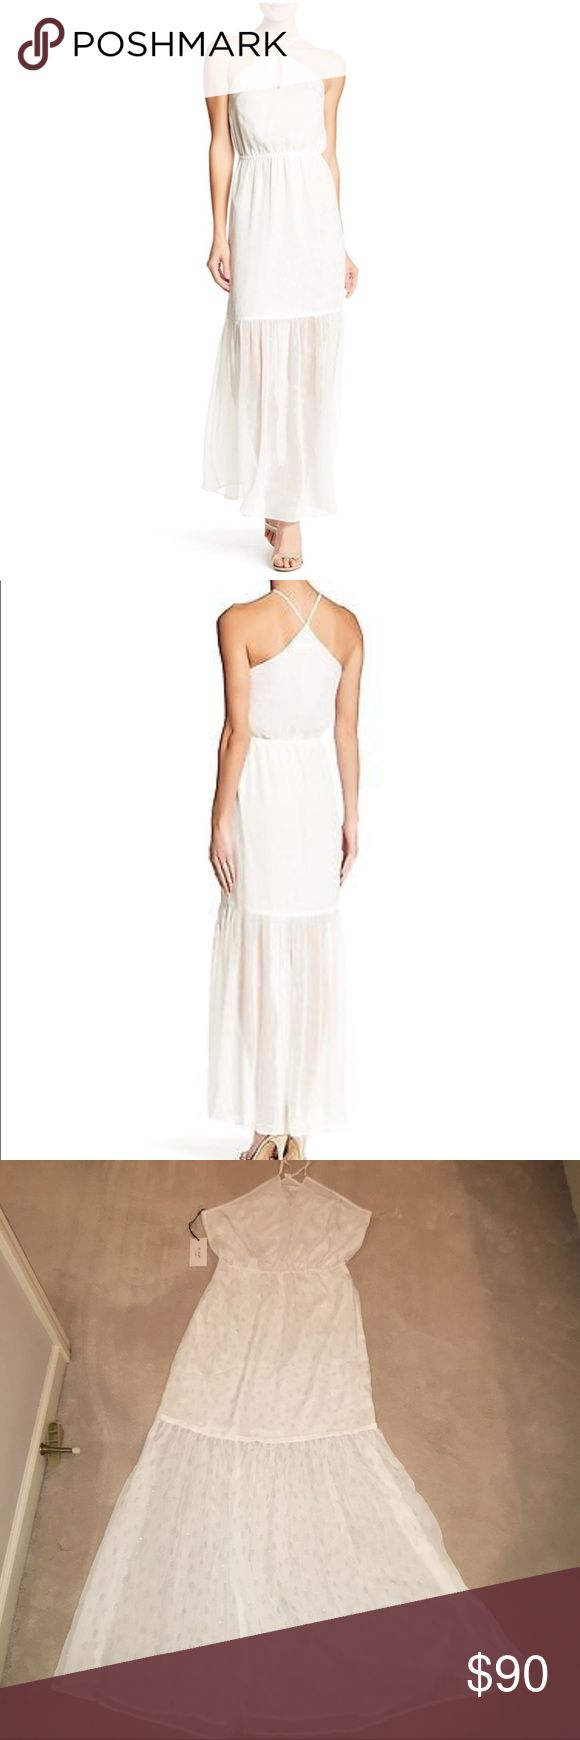 """Ali & Jay Periwinkle Women's White Sleeveless Gown NWT Ali & Jay Periwinkle Women's White Sleeveless Ruffle Hem Gown Night Out Dress  - Bandeau; Sleeveless - Front snap button closure - Front keyhole - Elasticized waist - Lined; Ruffle hem - Approx. 54"""" length (size L) - Imported - Shell/lining: 100% polyester Ali & Jay Dresses Maxi"""